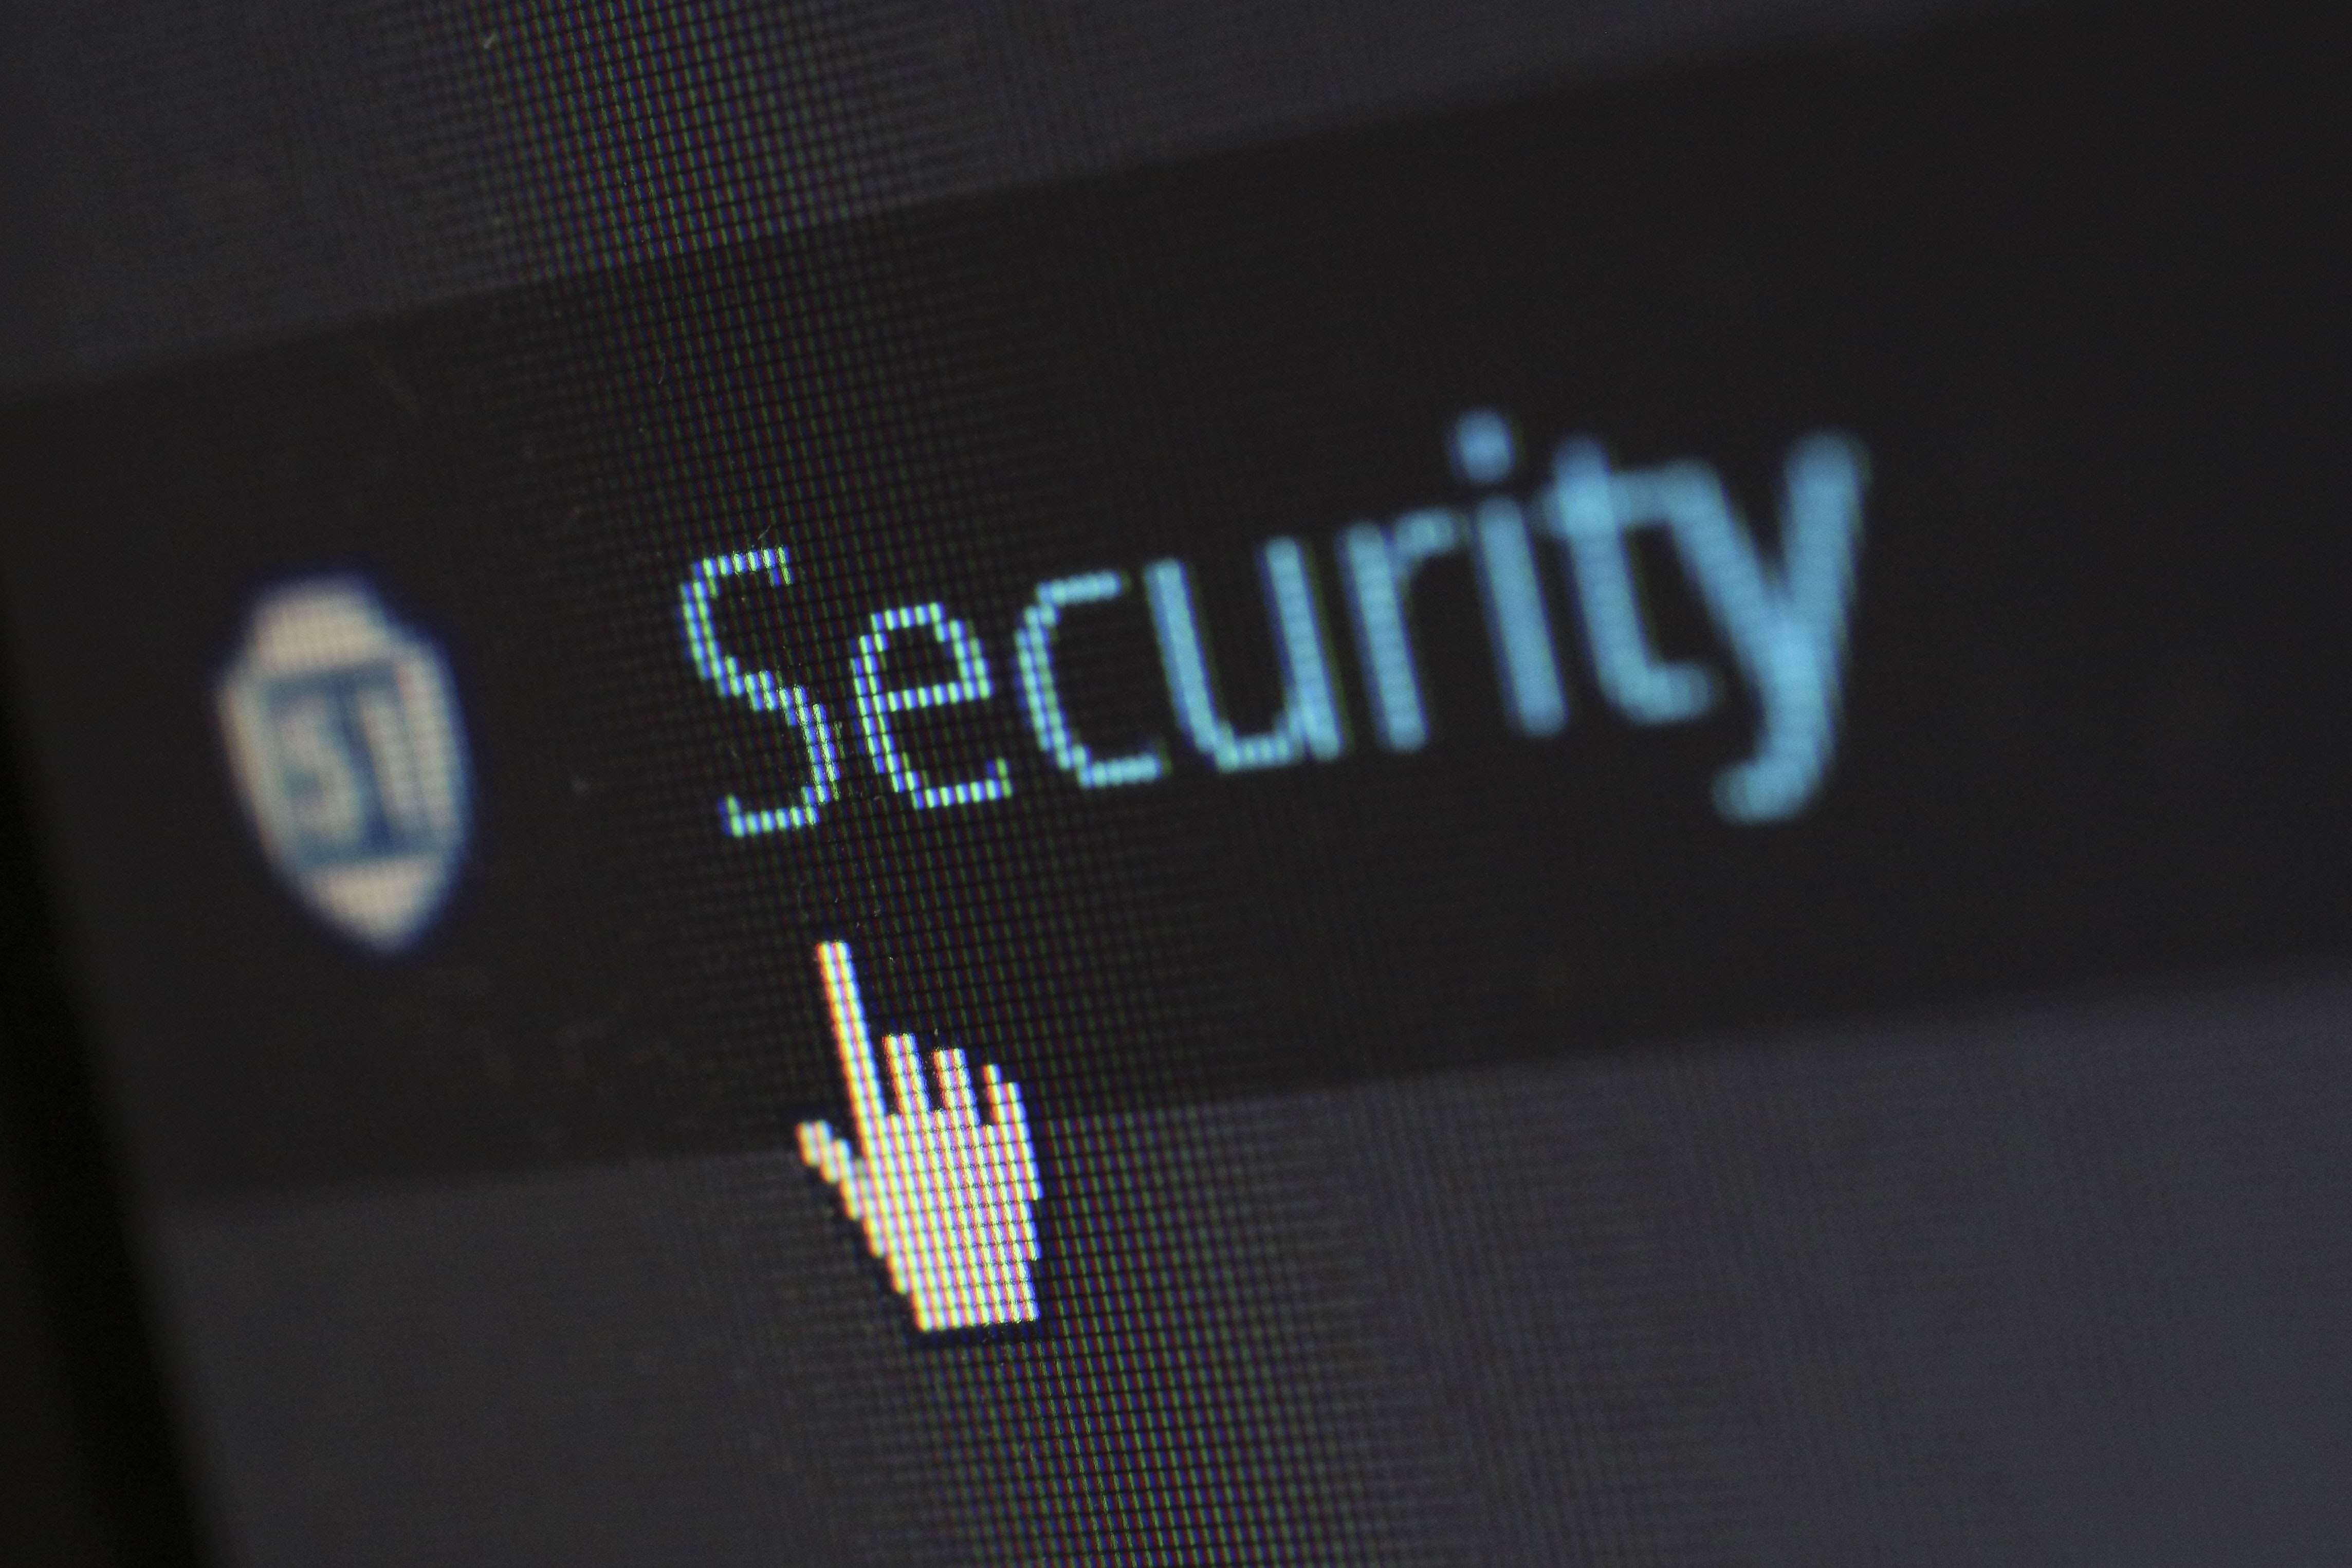 Cyber security, cyber attack, cyber attacks